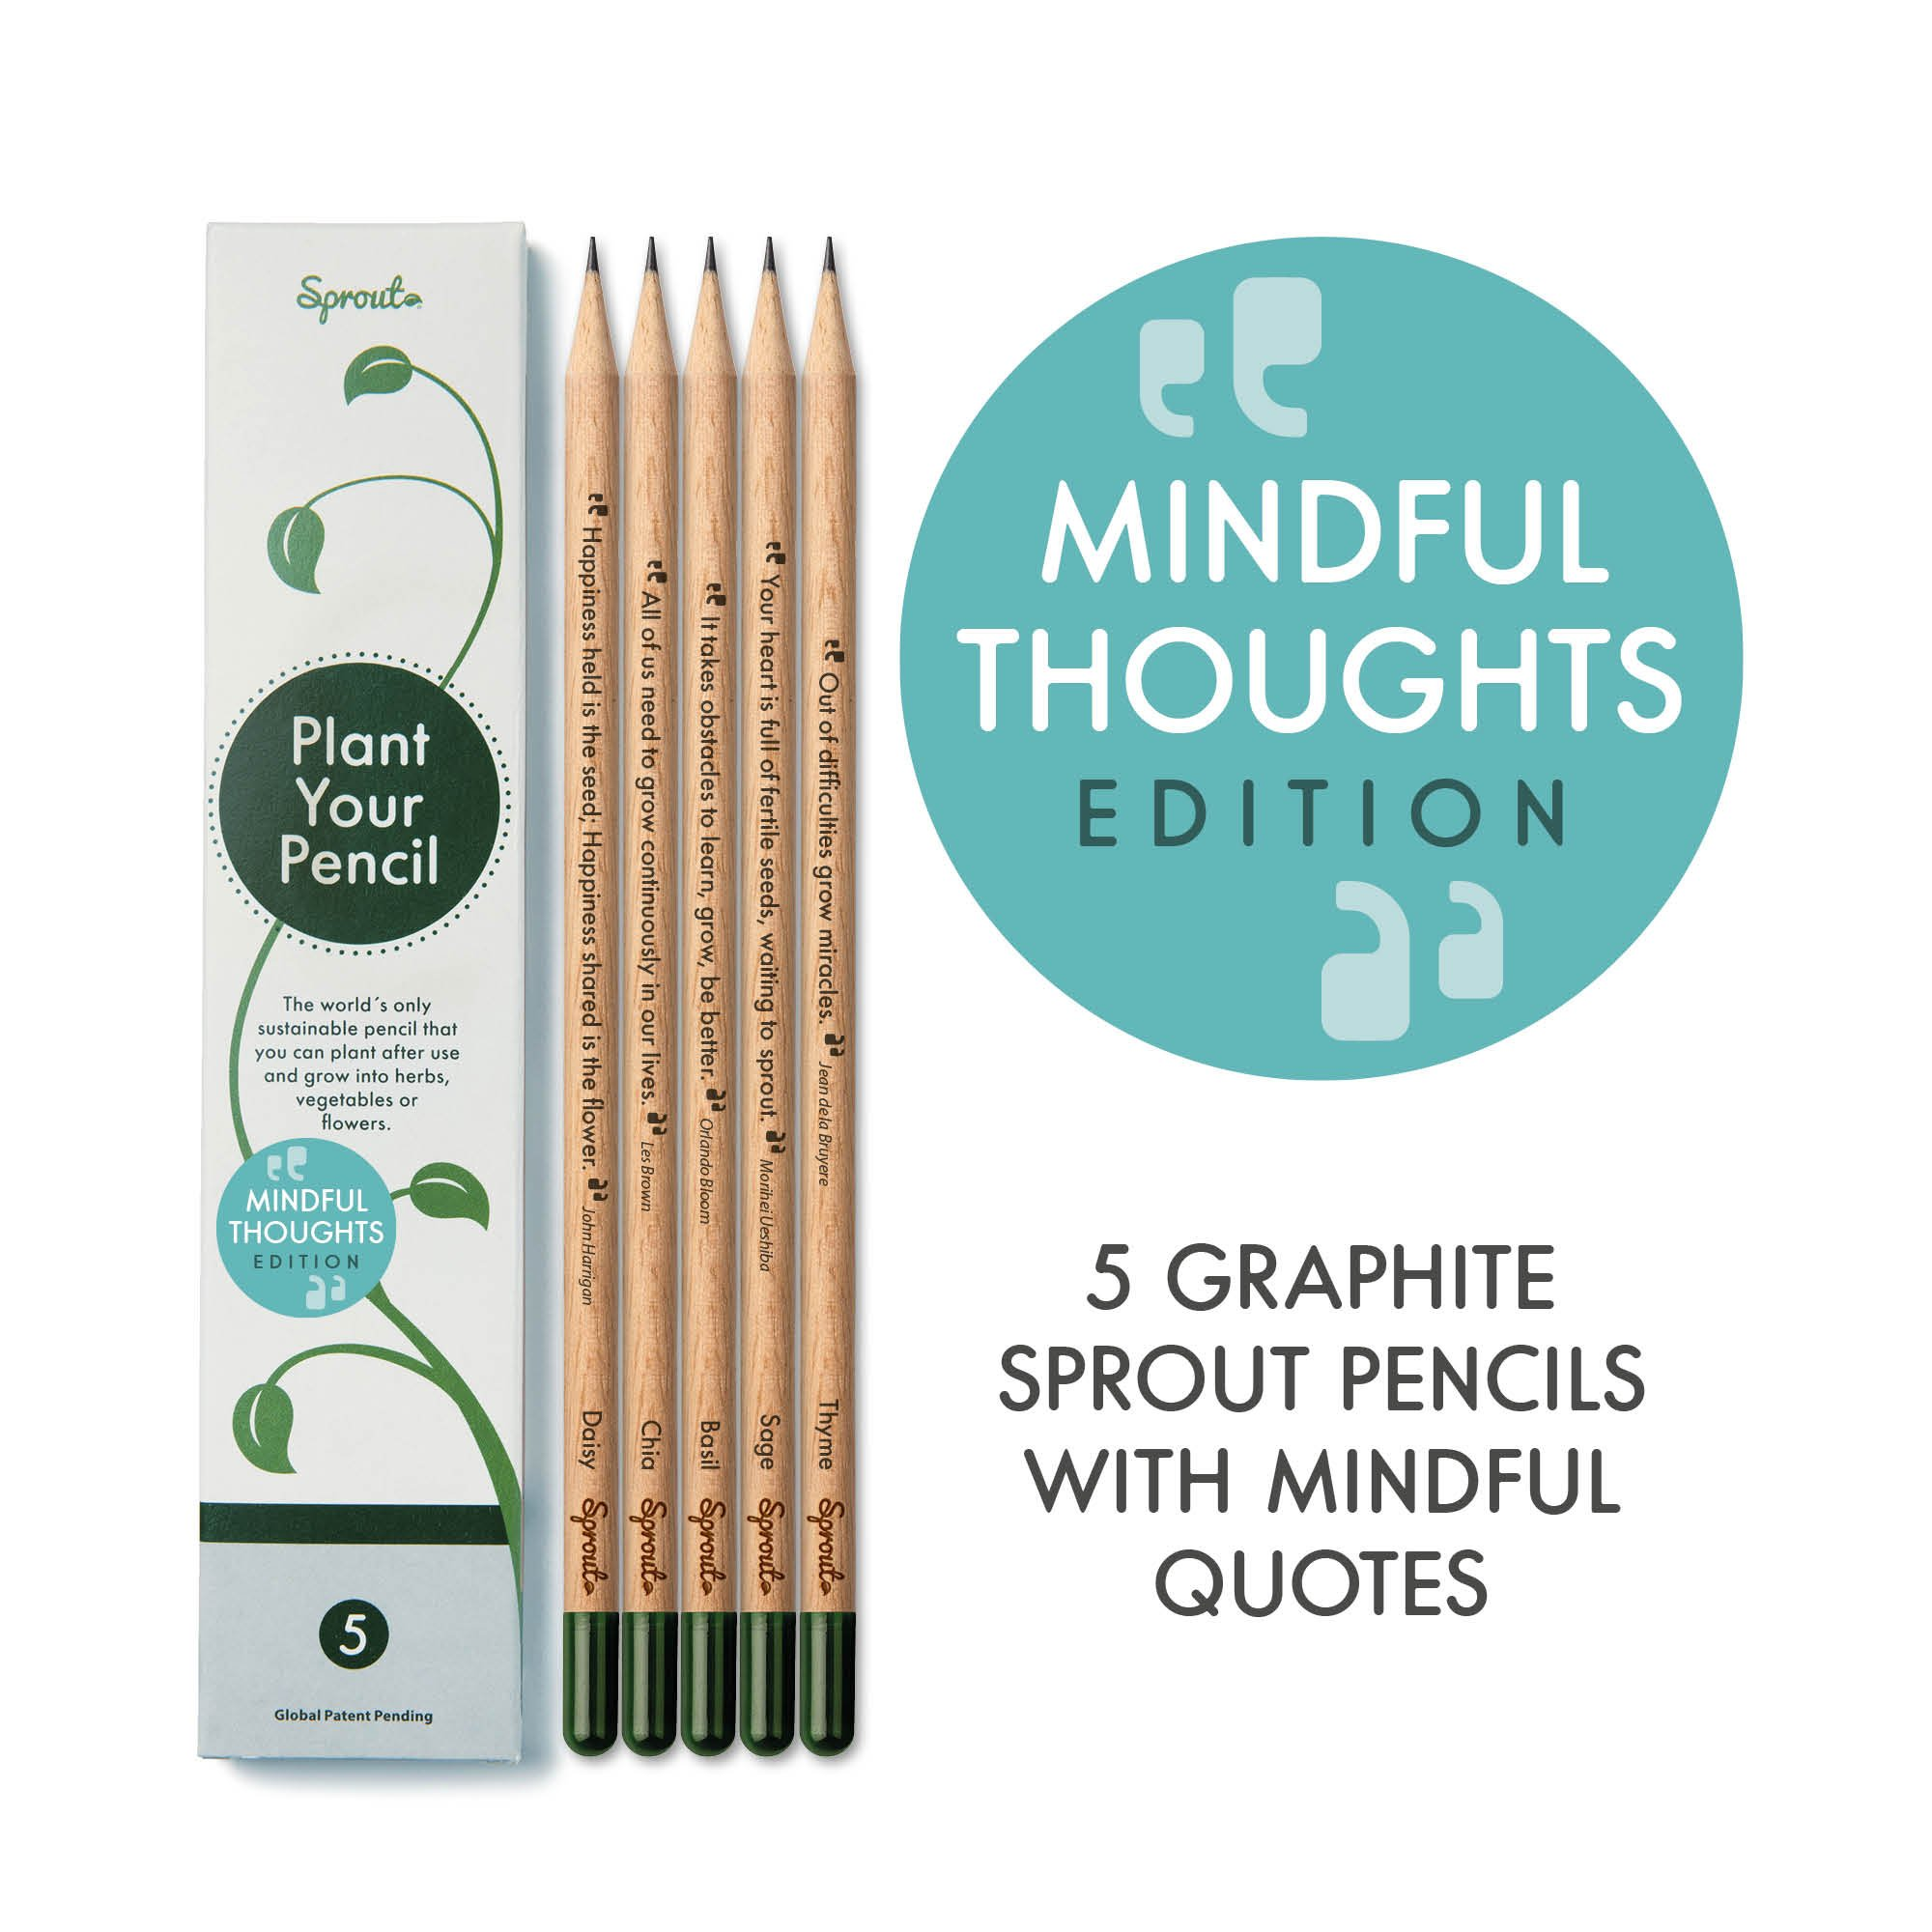 Sprout pencils - with mindful quotes | plantable graphite pencils with seeds in eco-friendly wood | 5 Pack |Gift set with herbs and flowers